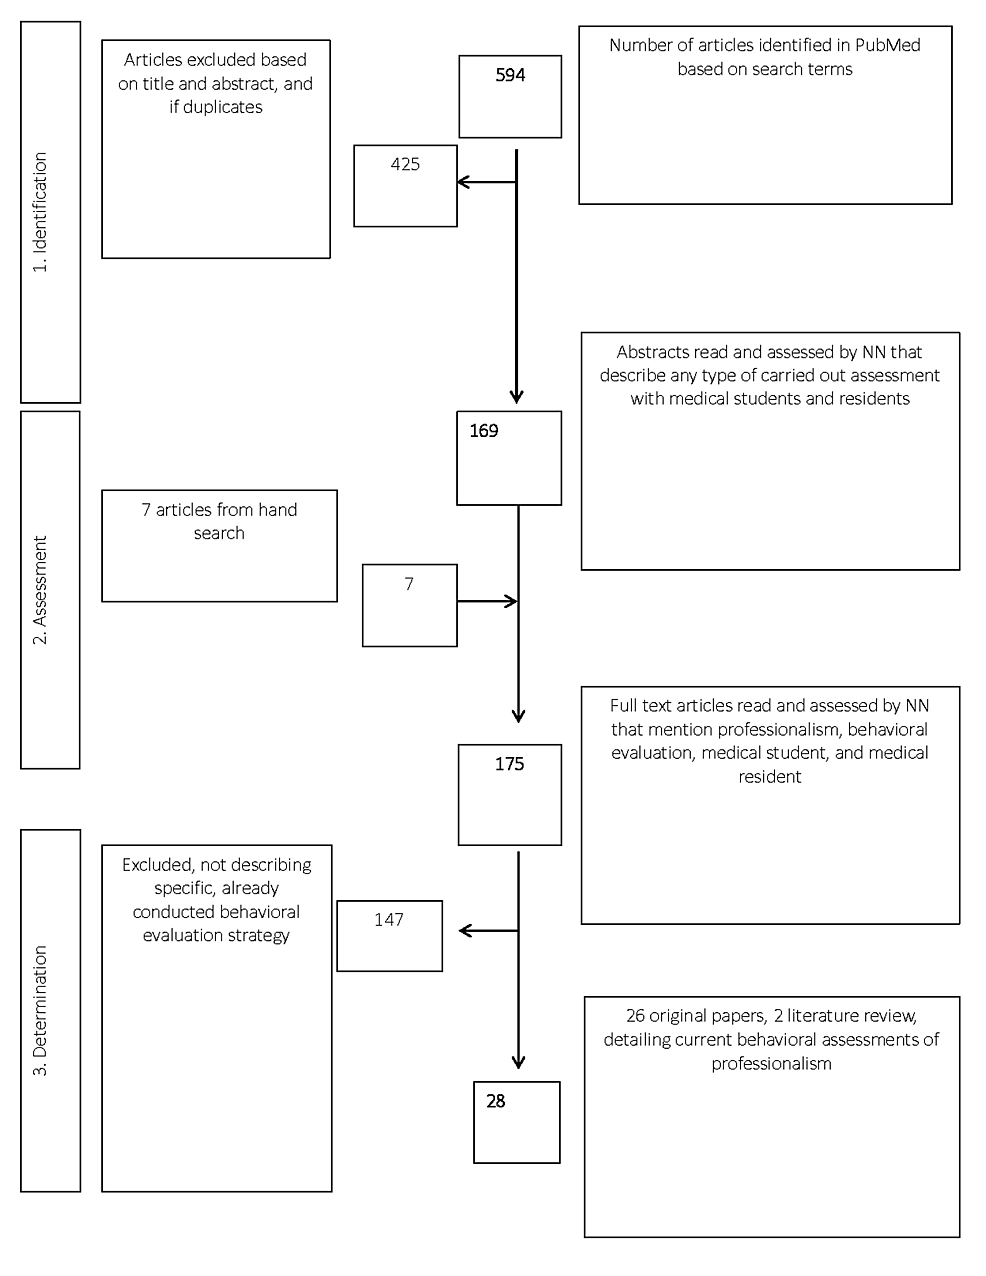 Flowchart-showing-phases-of-literature-inclusion-and-exclusion